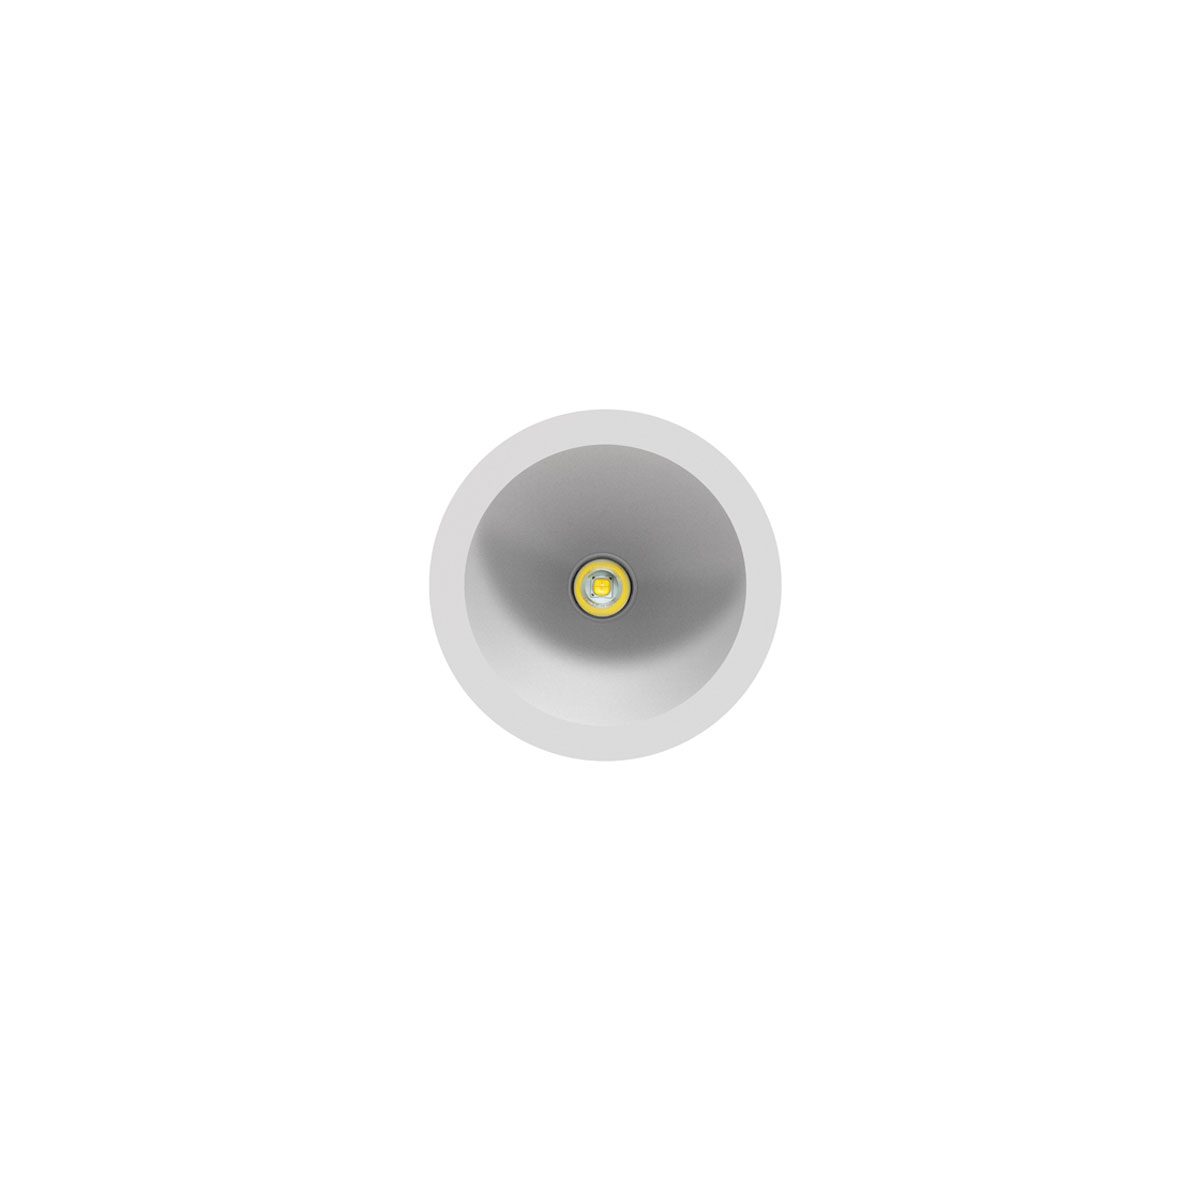 LOOP Indoor Downlight Lighting